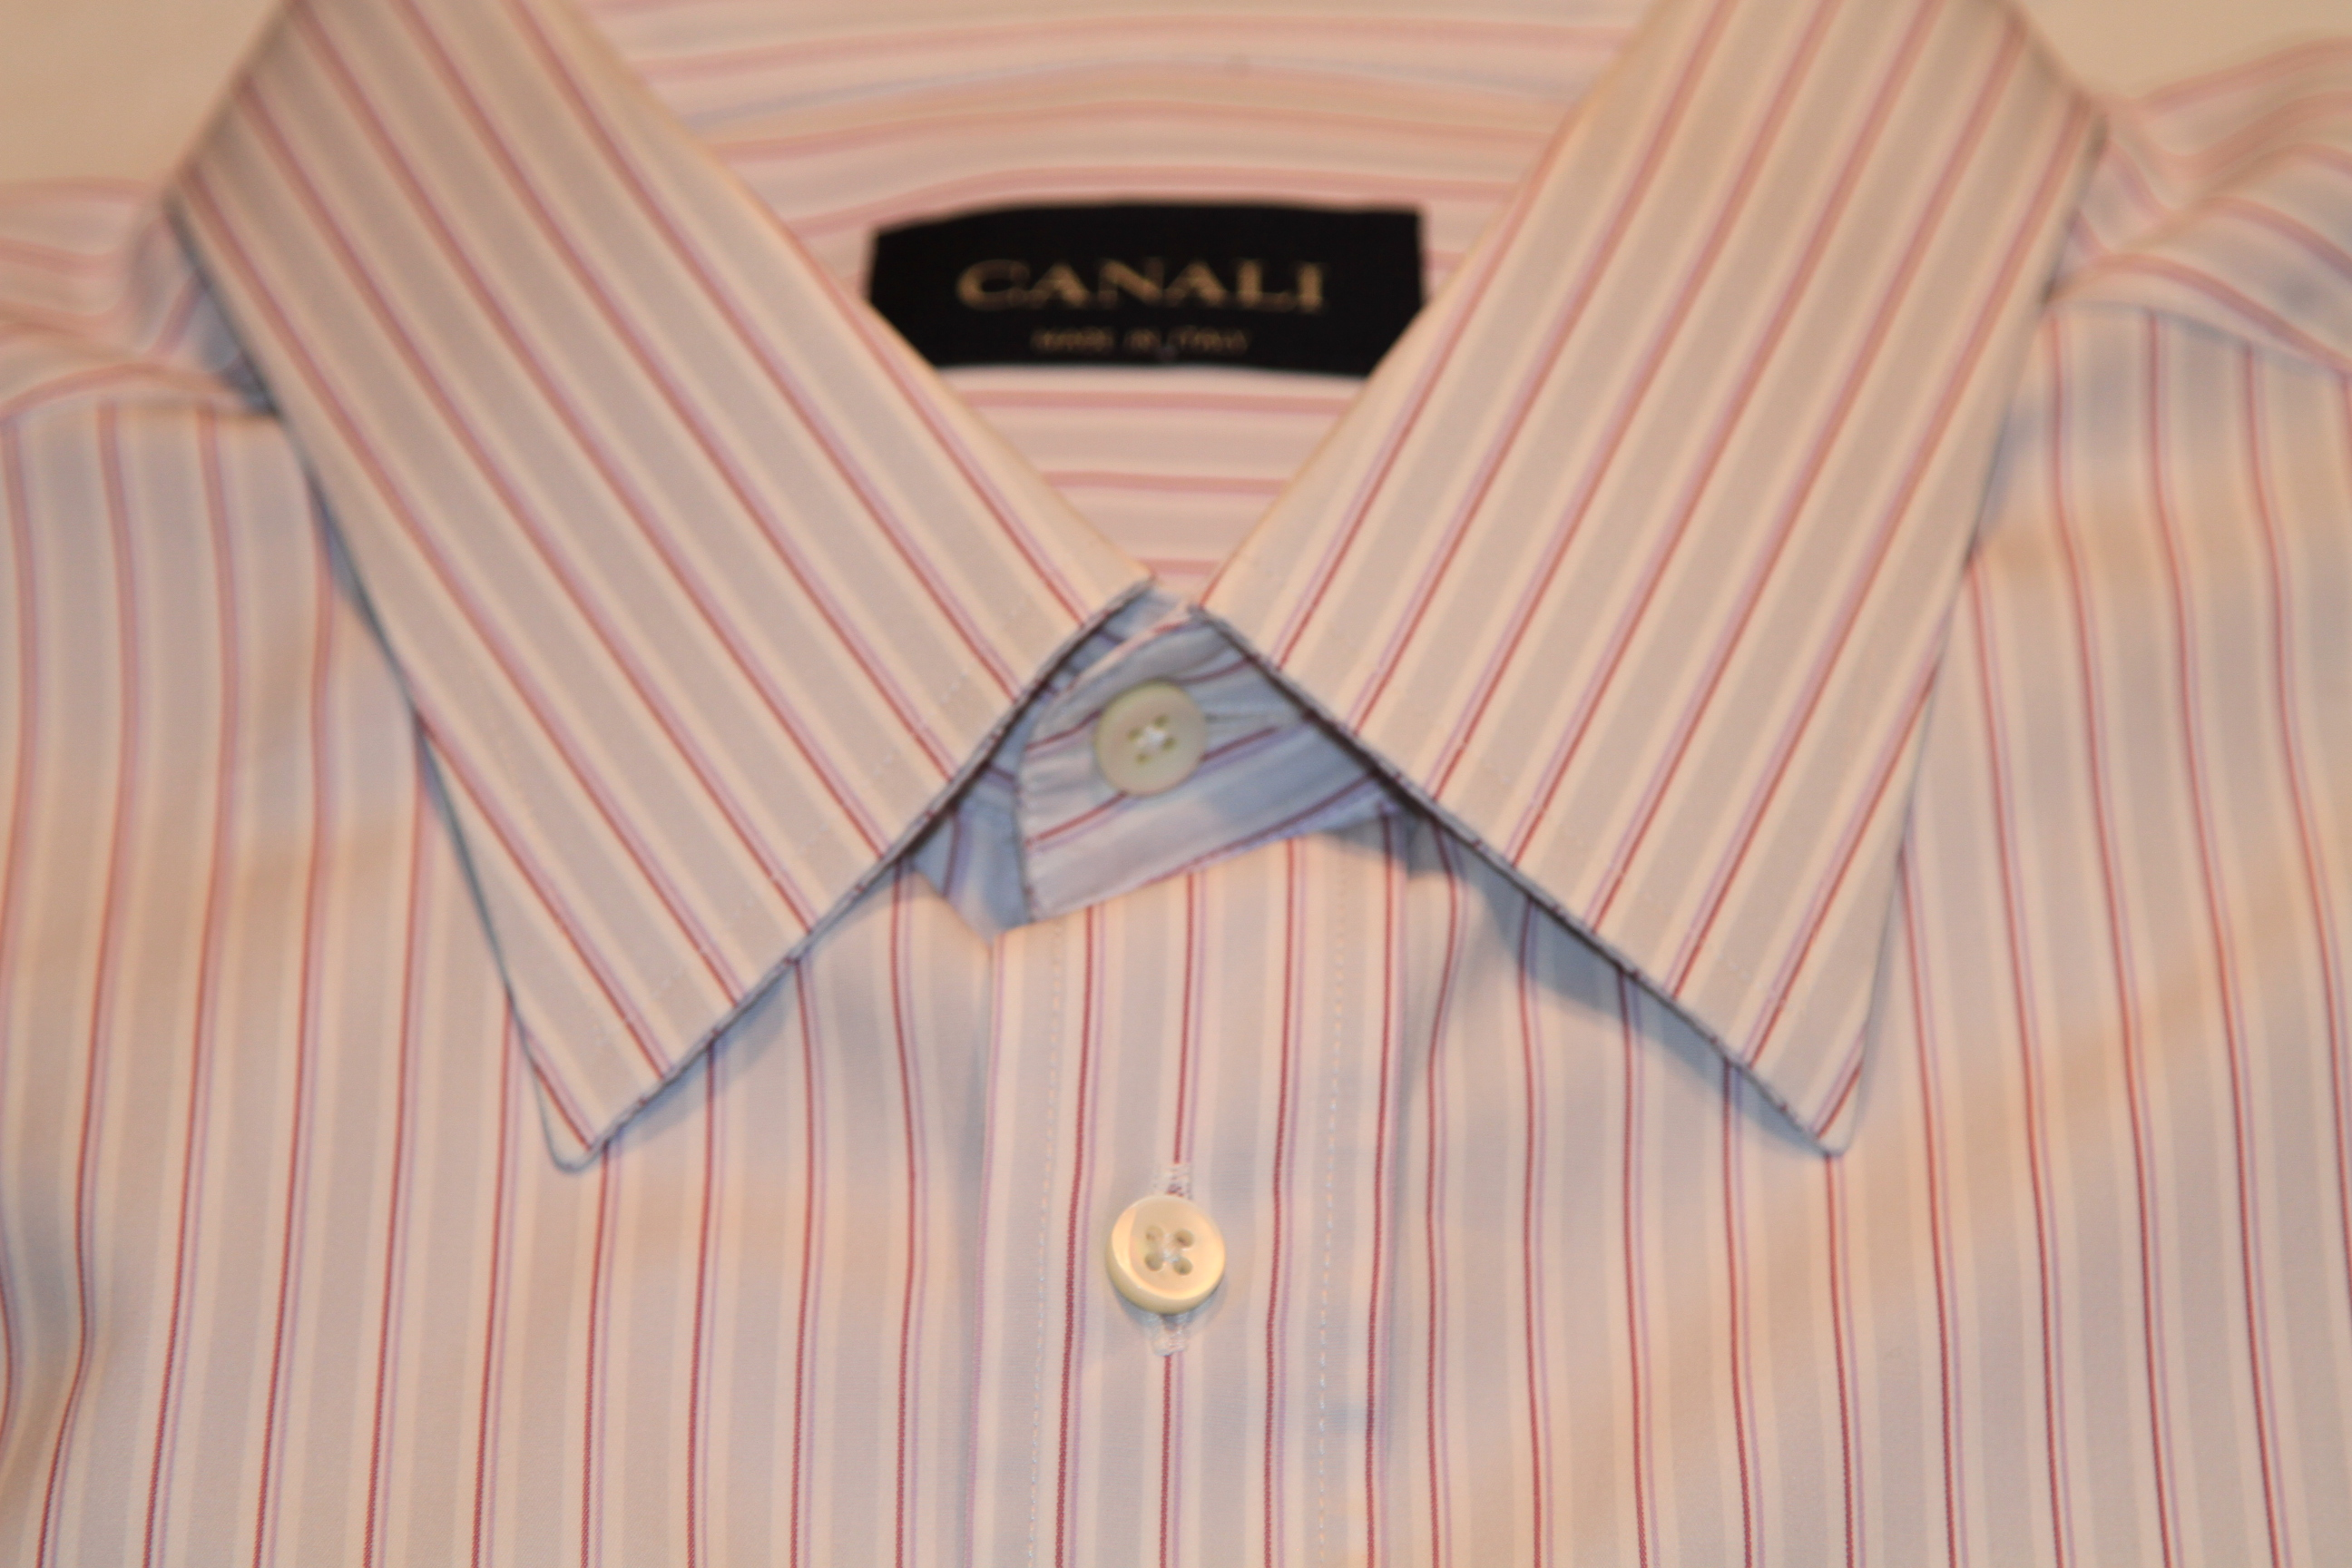 #15 - Canali 42/16.5 Light Grey with Maroon and Purple Stripe